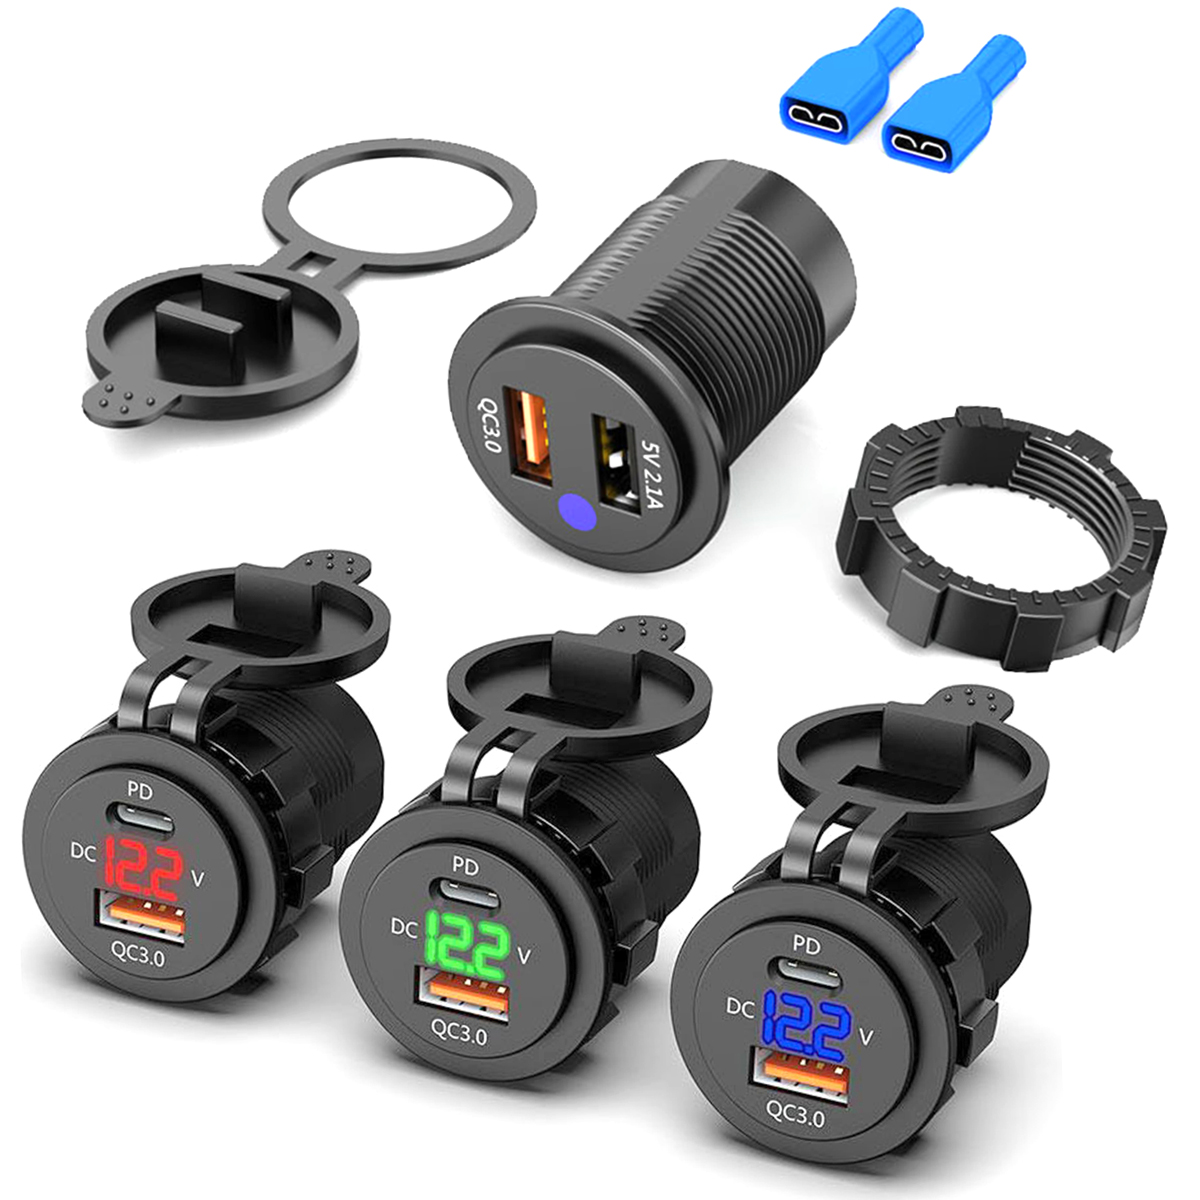 Waterproof 12V 24V Type C PD QC 3.0 USB <font><b>Car</b></font> <font><b>Charger</b></font> LED Voltmeter <font><b>Power</b></font> <font><b>Adapter</b></font> For Smart Phone Tablet Boat Motorcycle New image